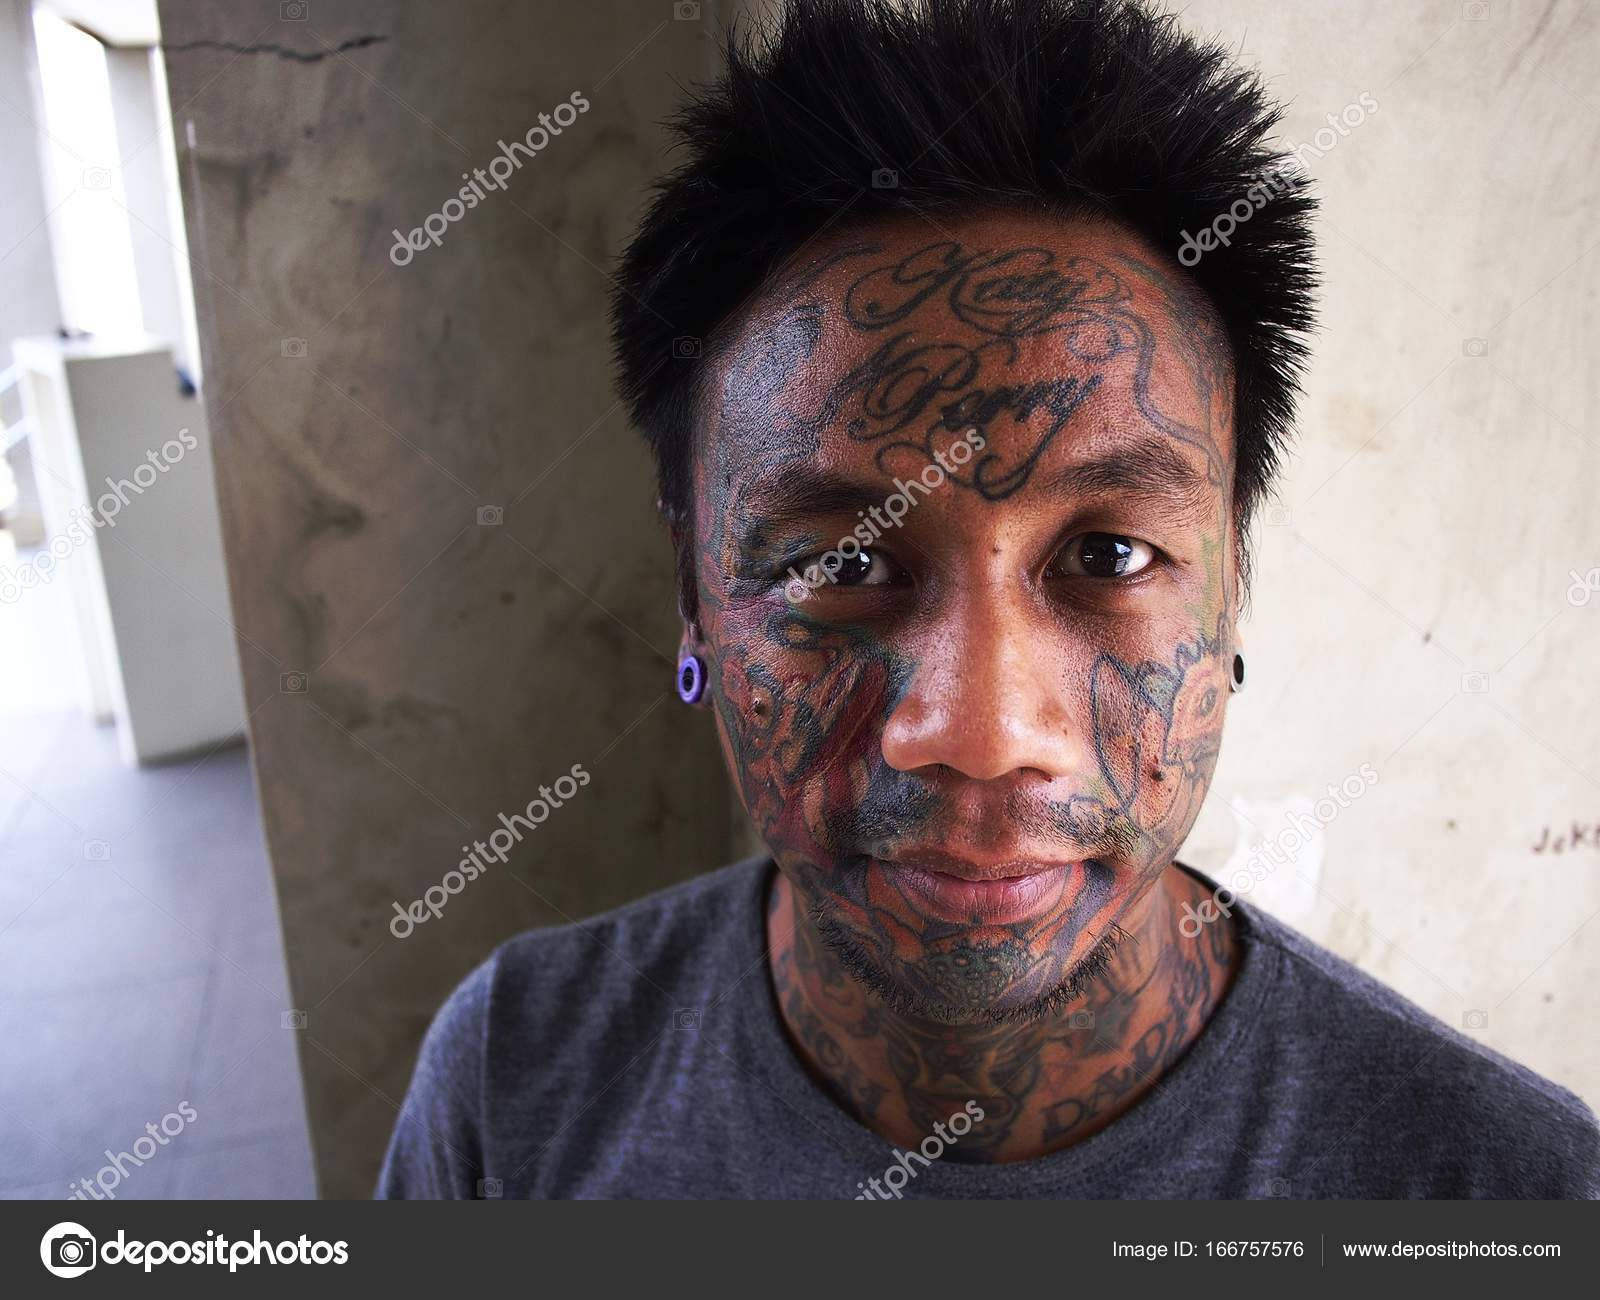 Pictures Facial Tattoos A Man With Body Art Shows Off His Facial Tattoo And Ear Piercing Stock Editorial Photo C Junpinzon 166757576